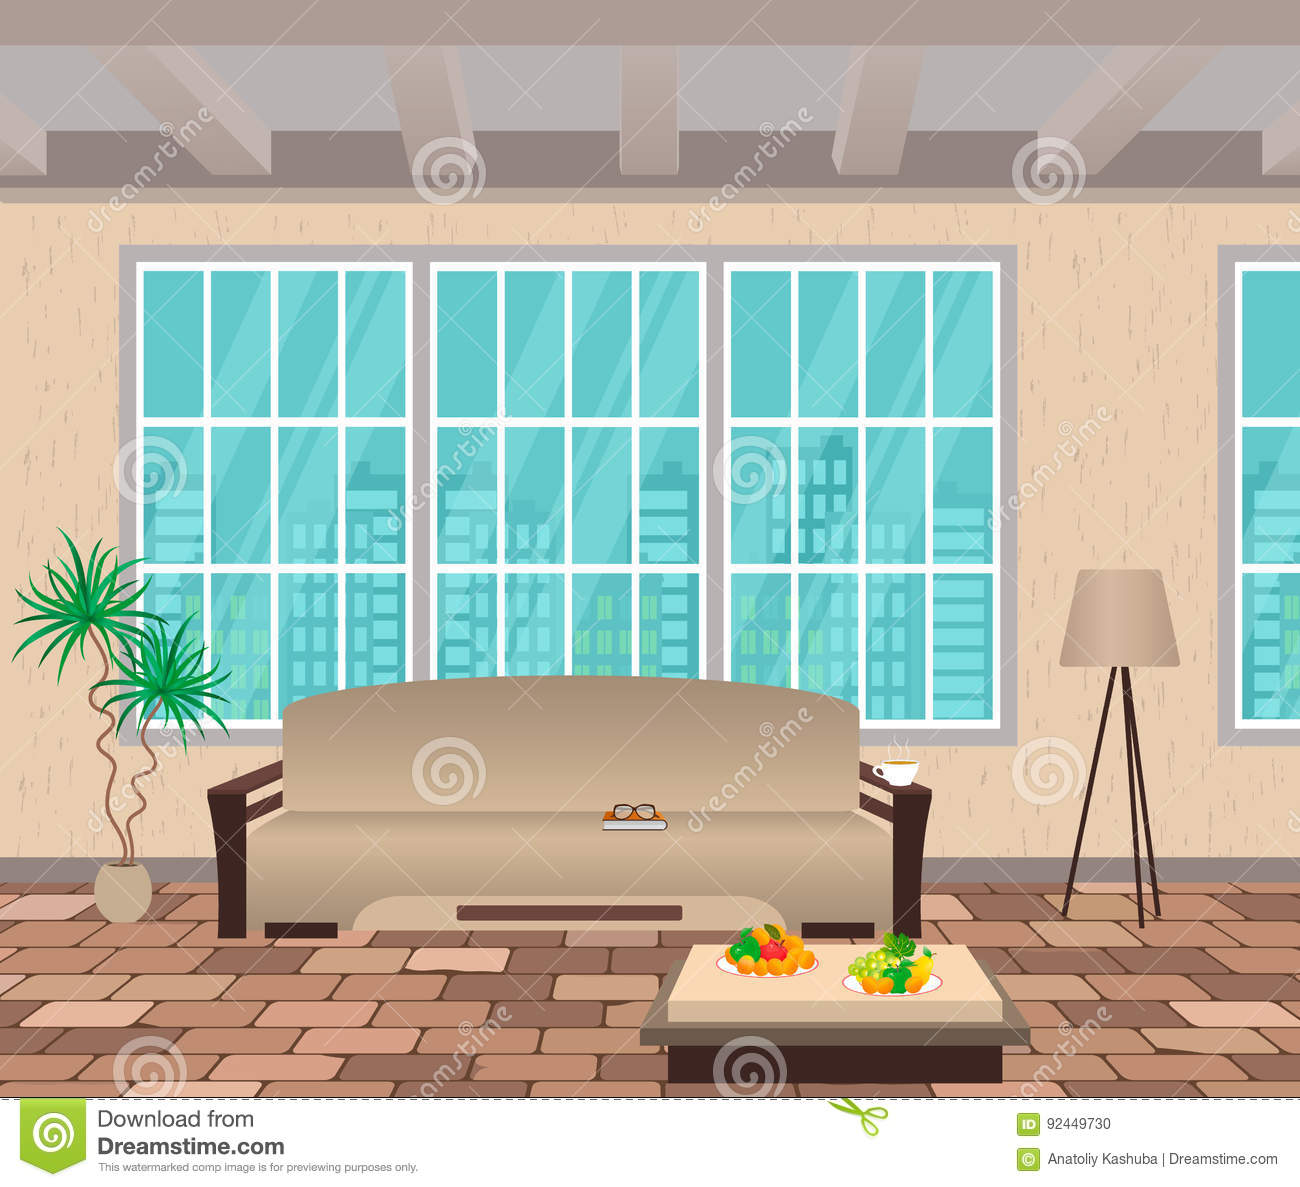 Vintage window interior design royalty free stock photo for Window design cartoon